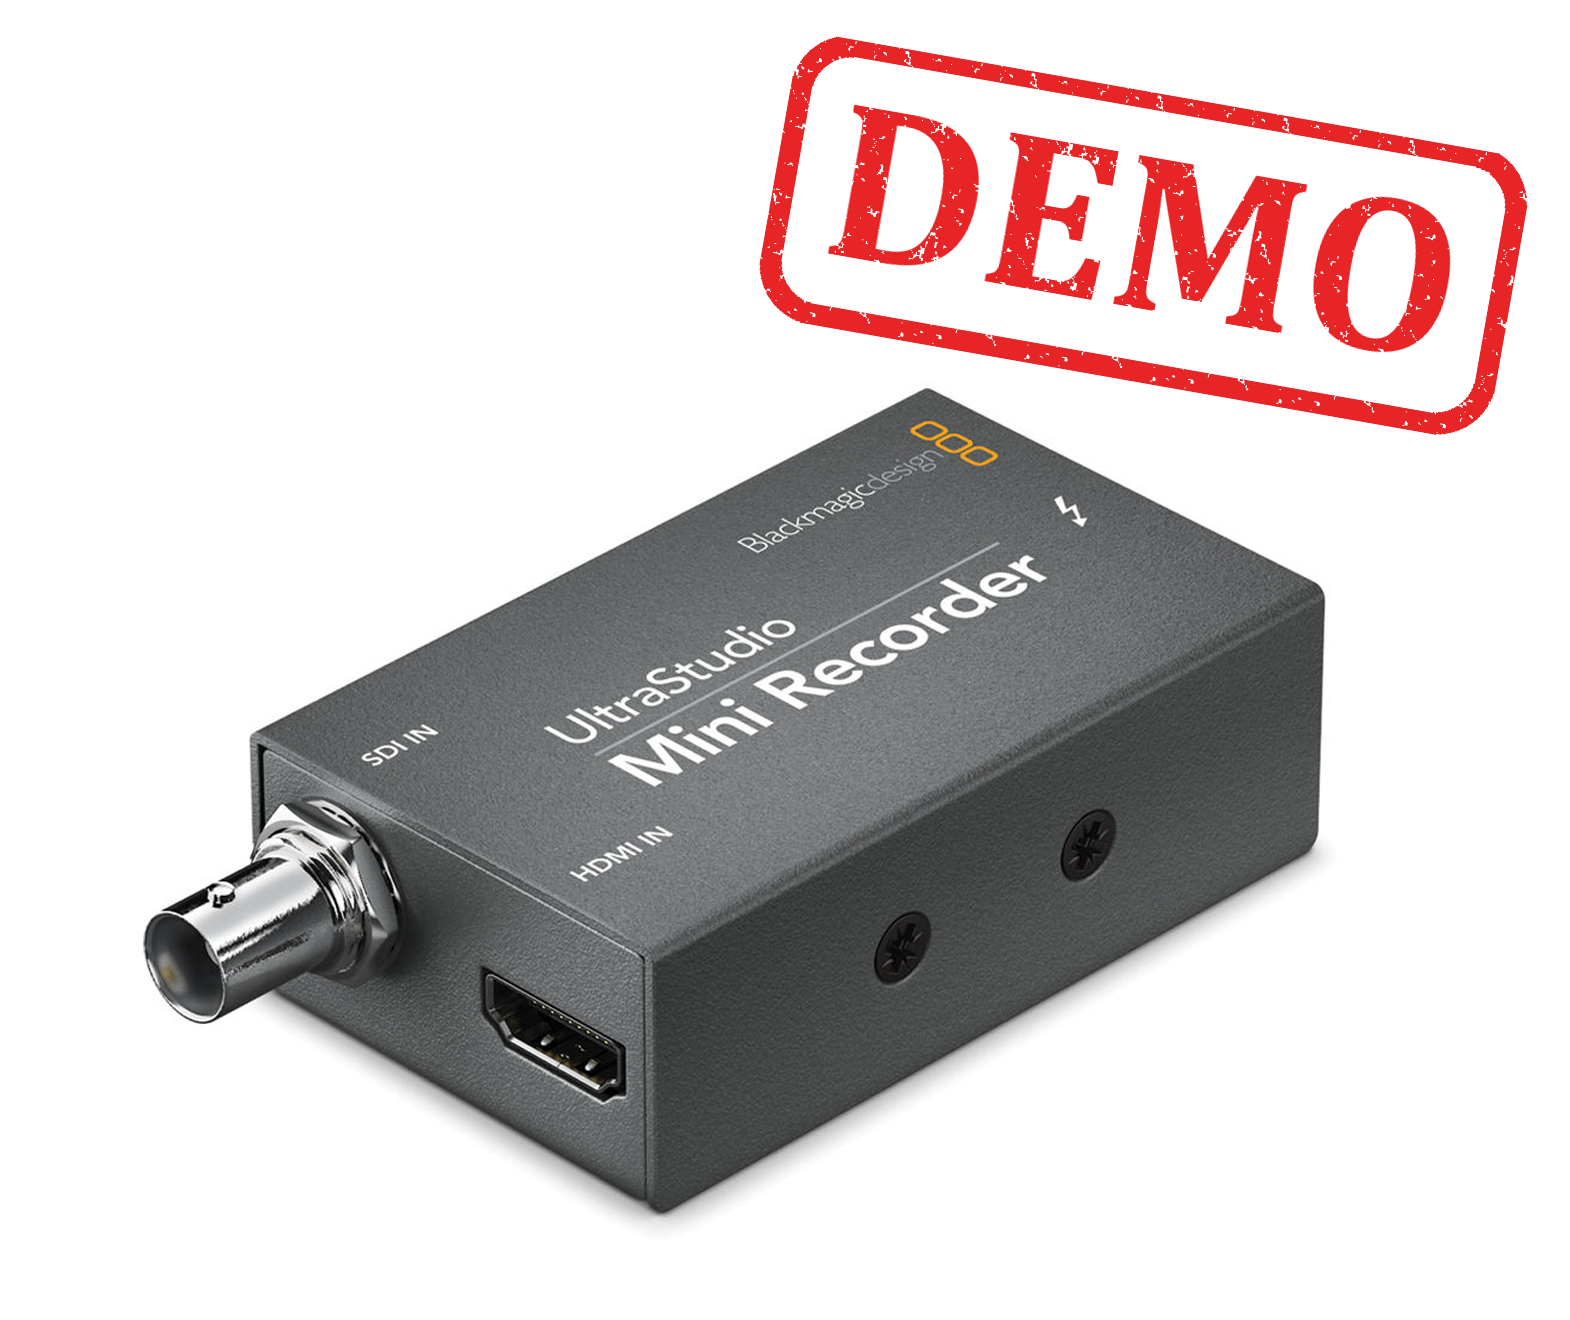 DEMO - Blackmagic Design UltraStudio Mini Recorder